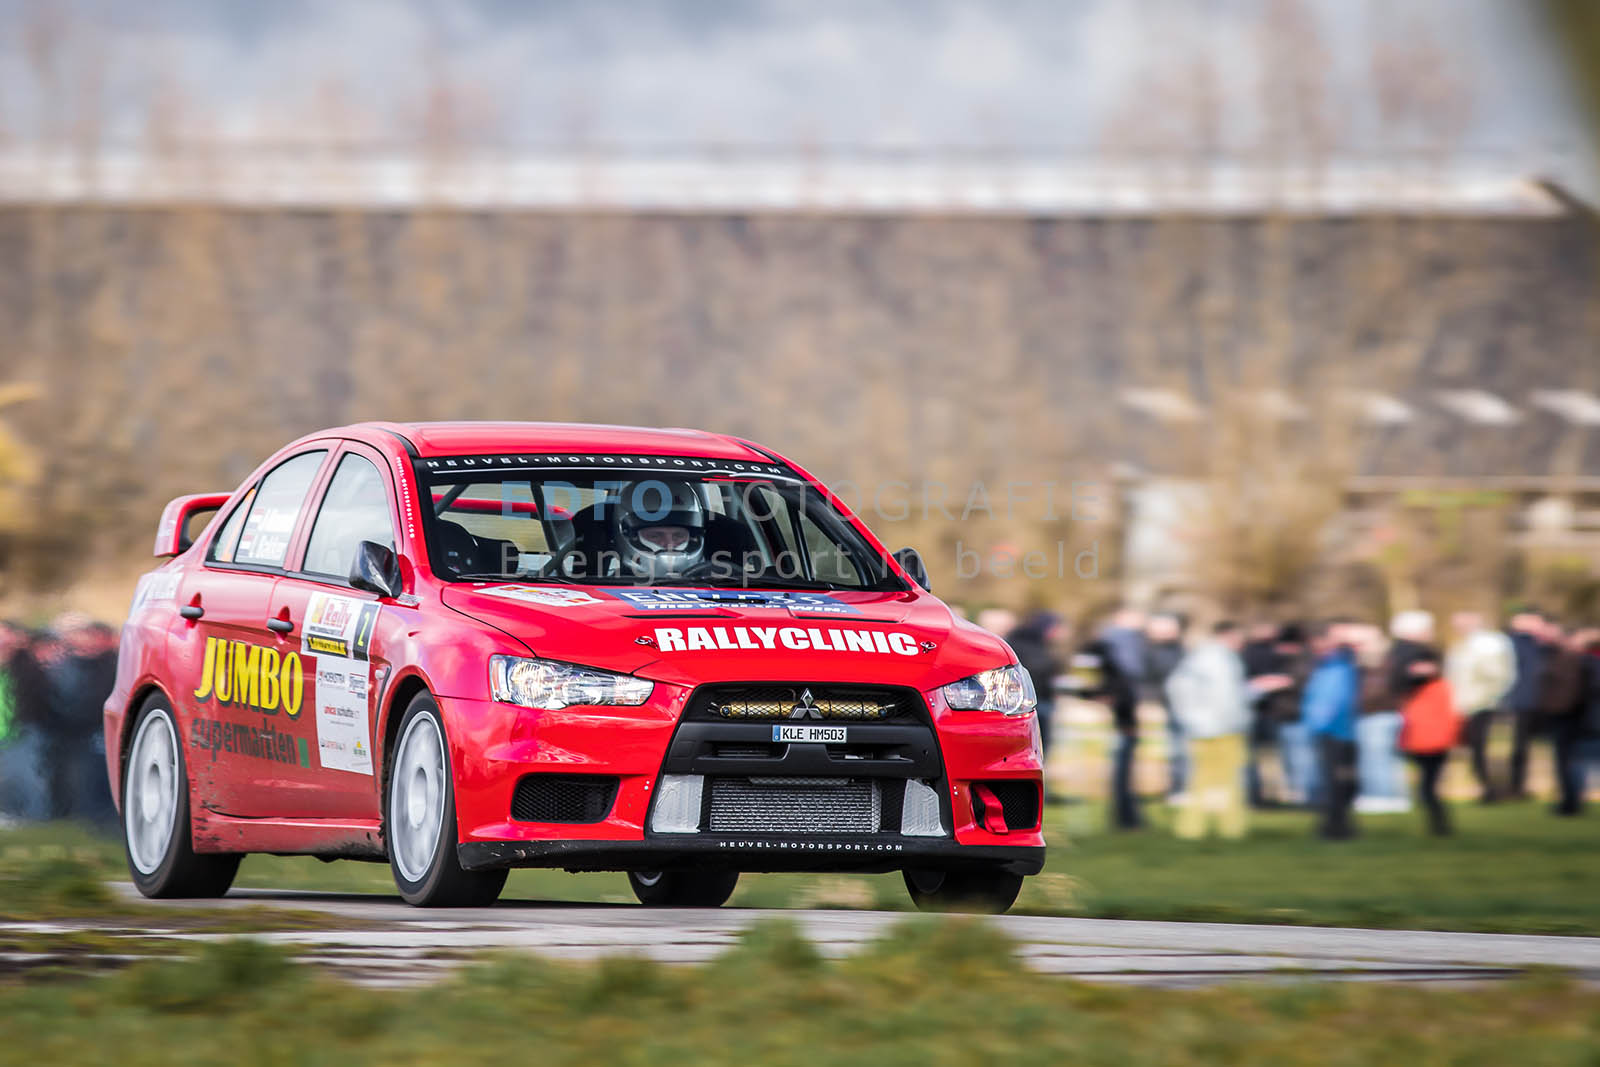 Jasper van den Heuvel - Lisette Bakker - Mitsubishi Lancer EVO 10 - Tank S Rally 2015